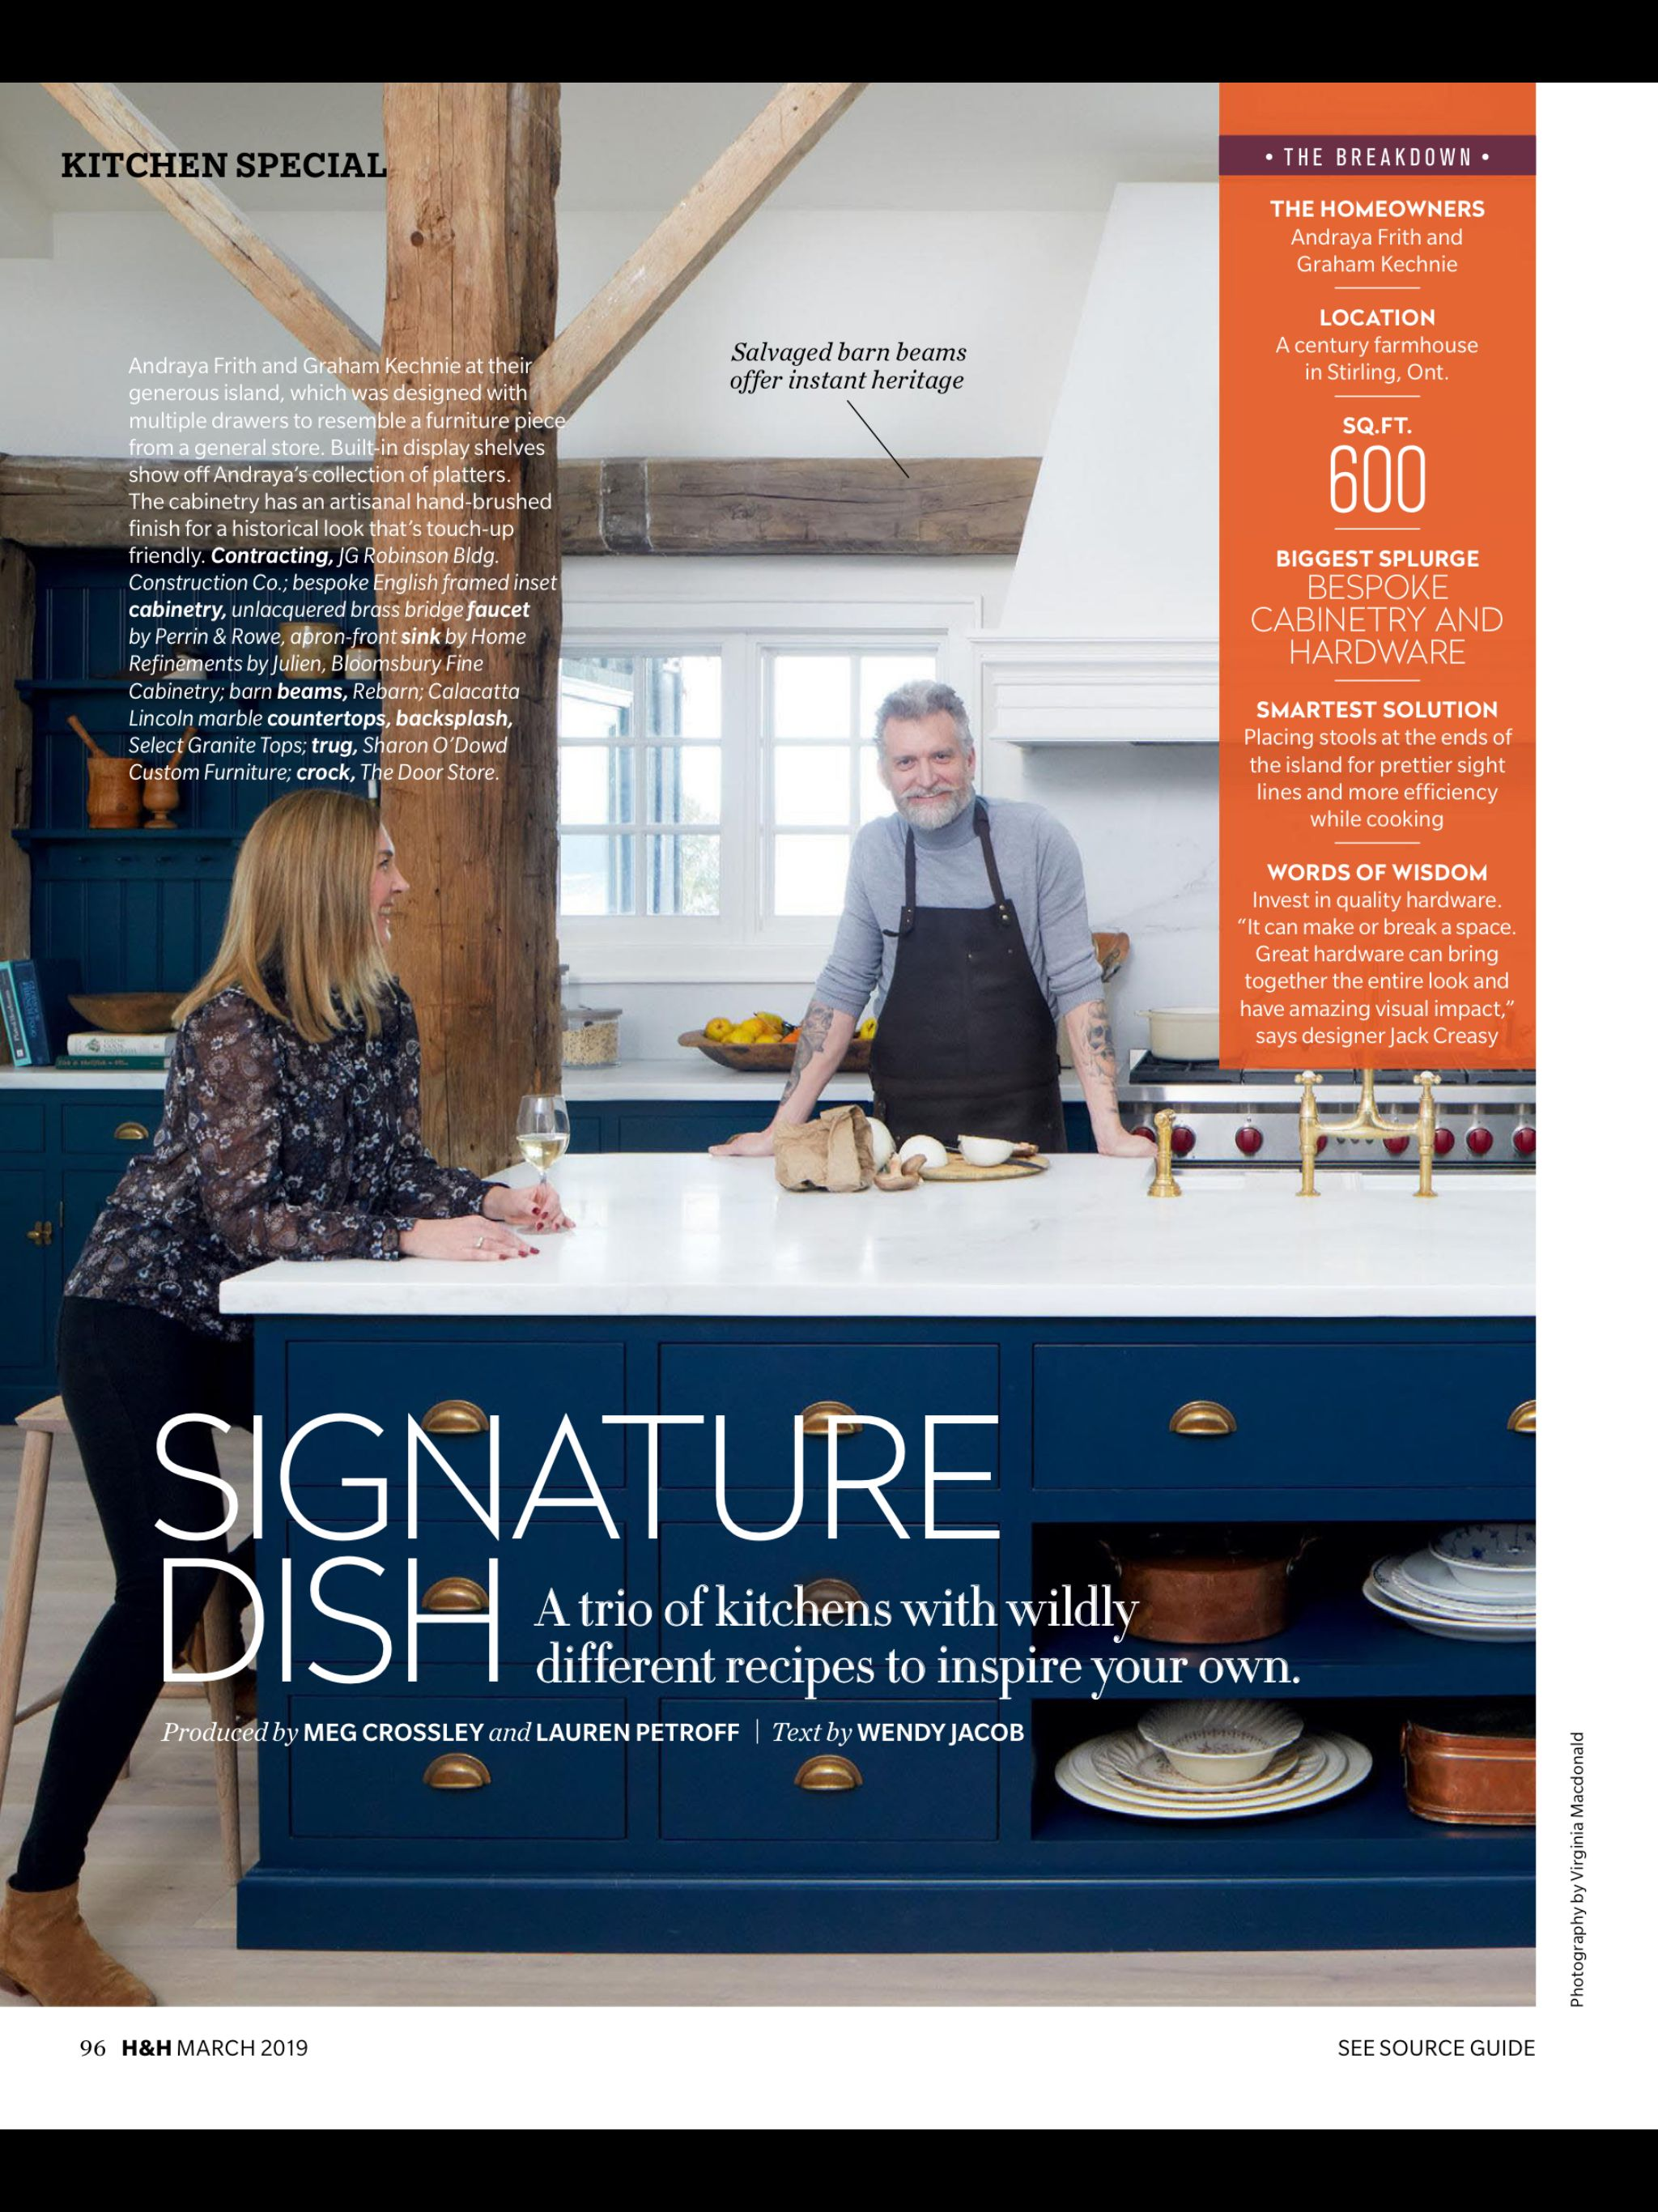 Signature Dish From House Home Magazine March 2019 Read It On The Texture App Unlimited Access To 200 House And Home Magazine Barn Beams Smart Solutions